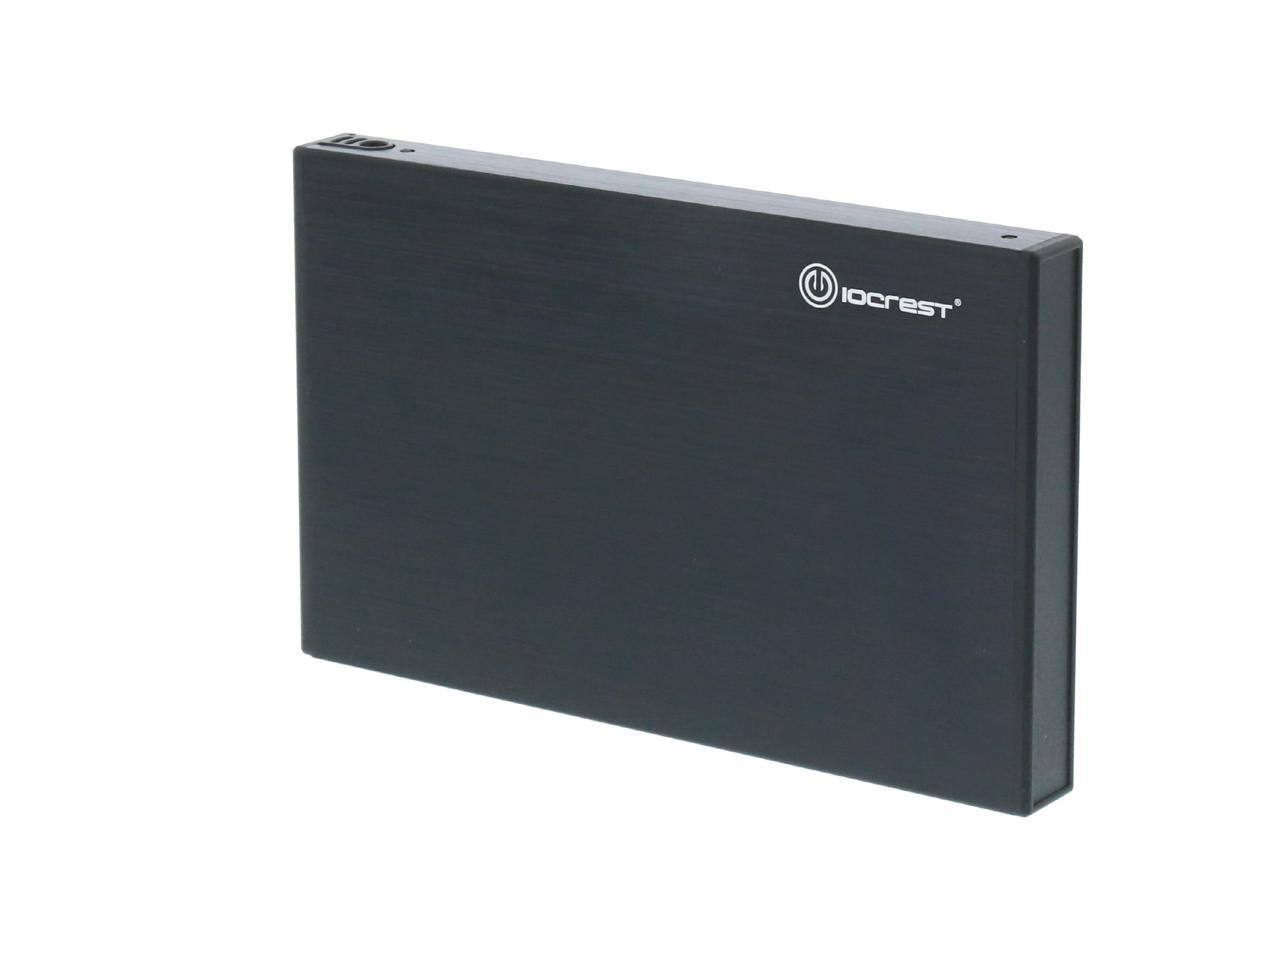 "Syba 2.5"" SATA HDD/SSD USB 3.0 External Enclosure Case (SY-ENC25055) for Free After Rebate + S&H @ Newegg"